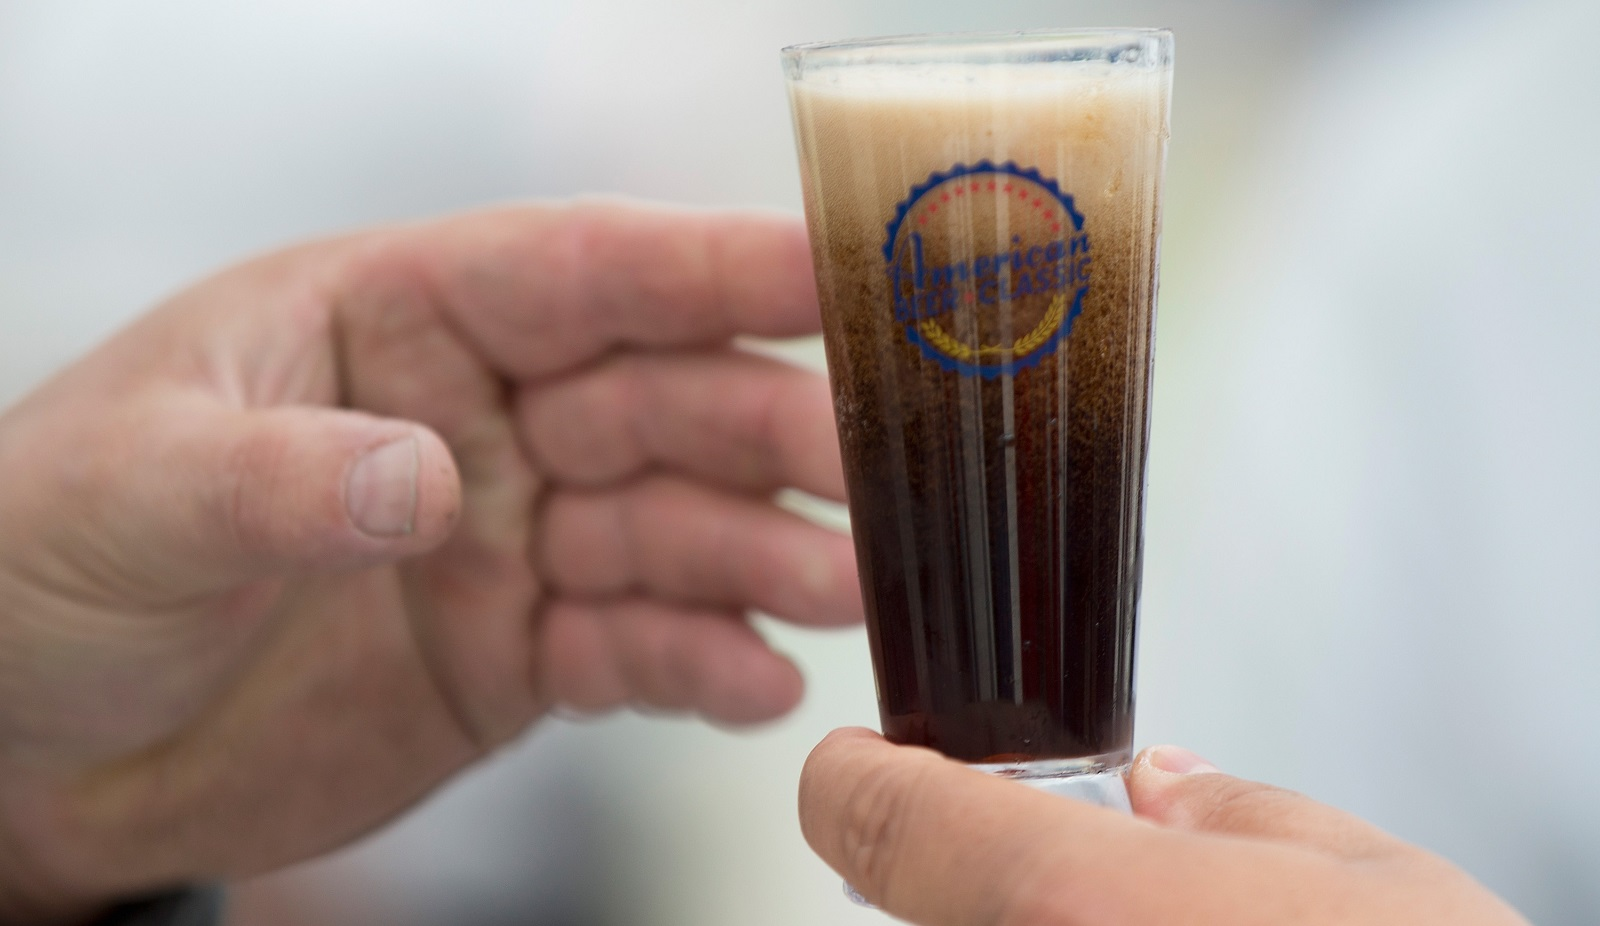 Not Your Father's Root Beer, an alcoholic beverage produced by Small Town, has been quickly selling out in area stores. Here it's pictured as a sample-sized portion in Chicago. (Getty Images)